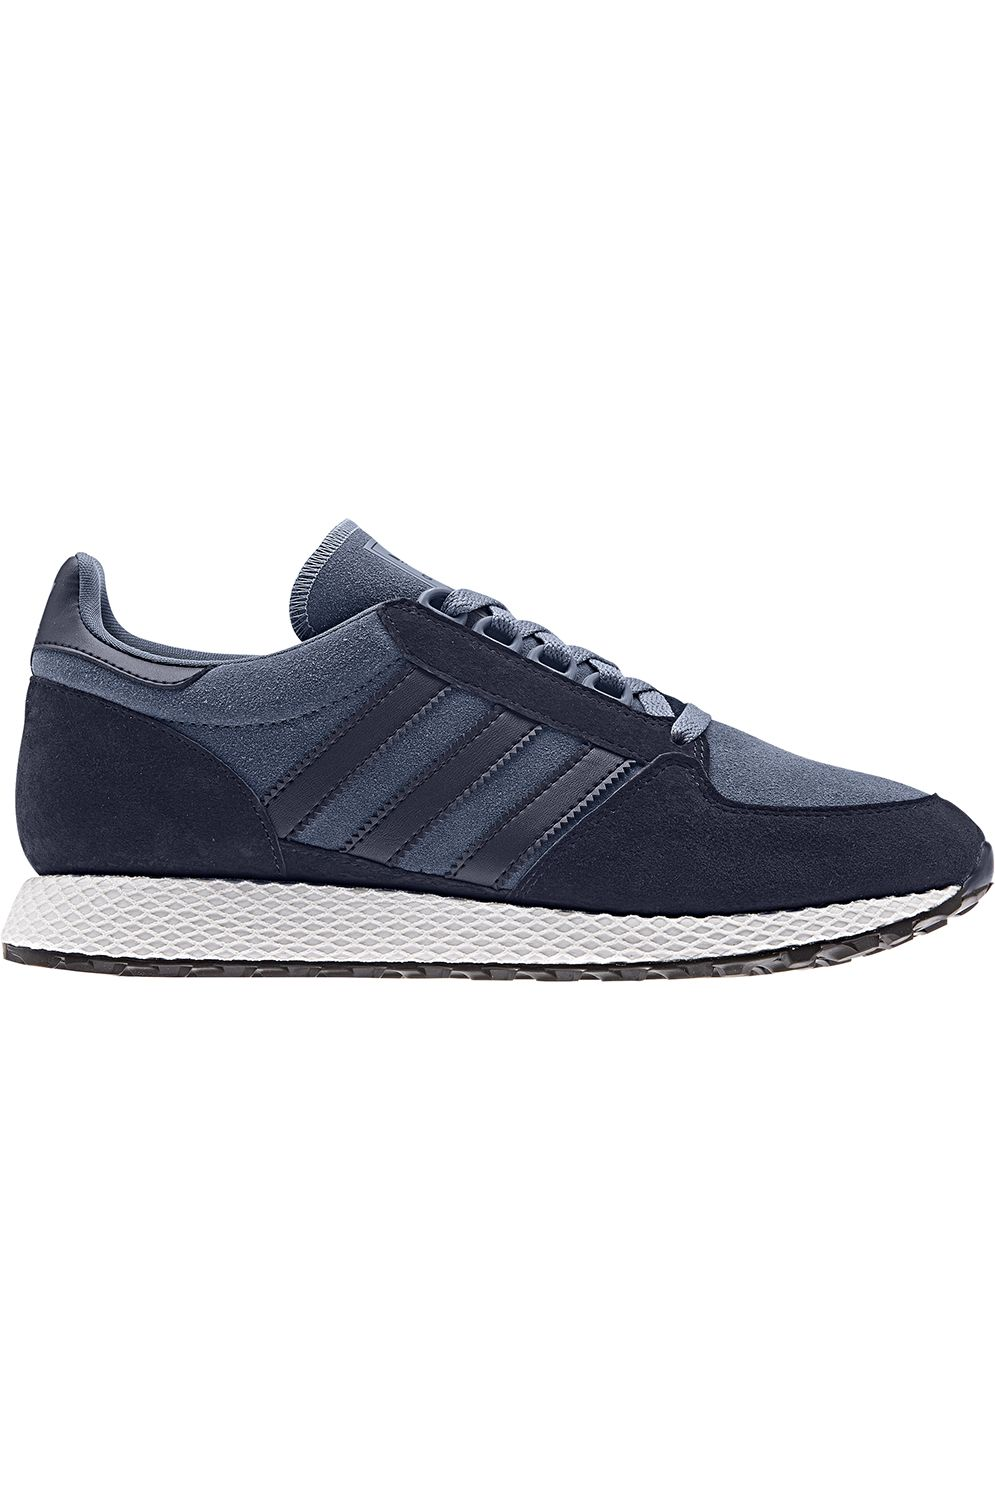 Tenis Adidas FOREST GROVE Tech Ink/Core Black/Legend Ink